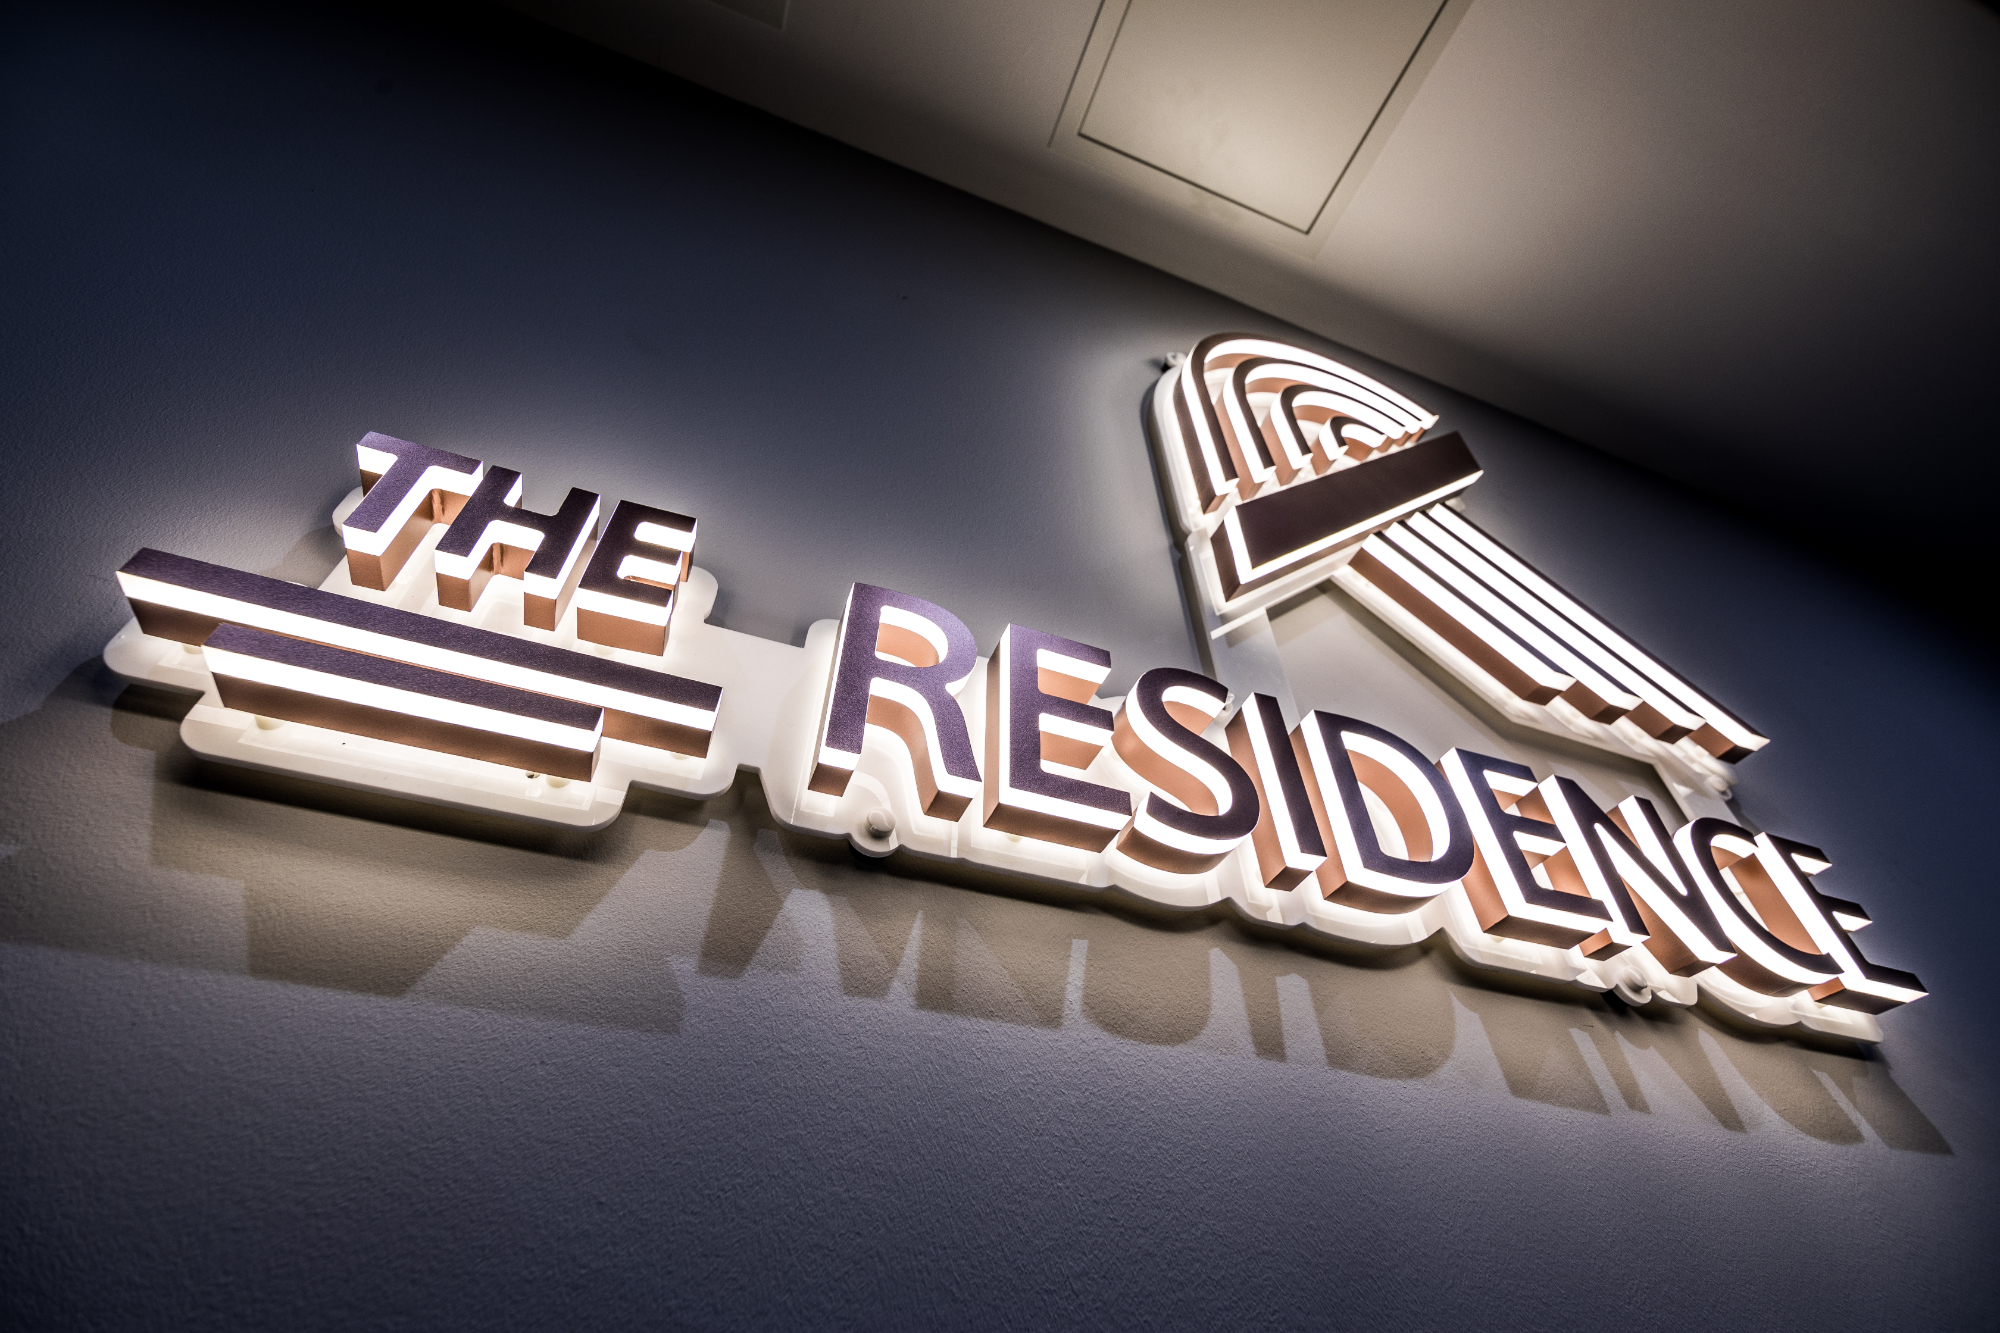 The Residence student accommodation coventry reception logo